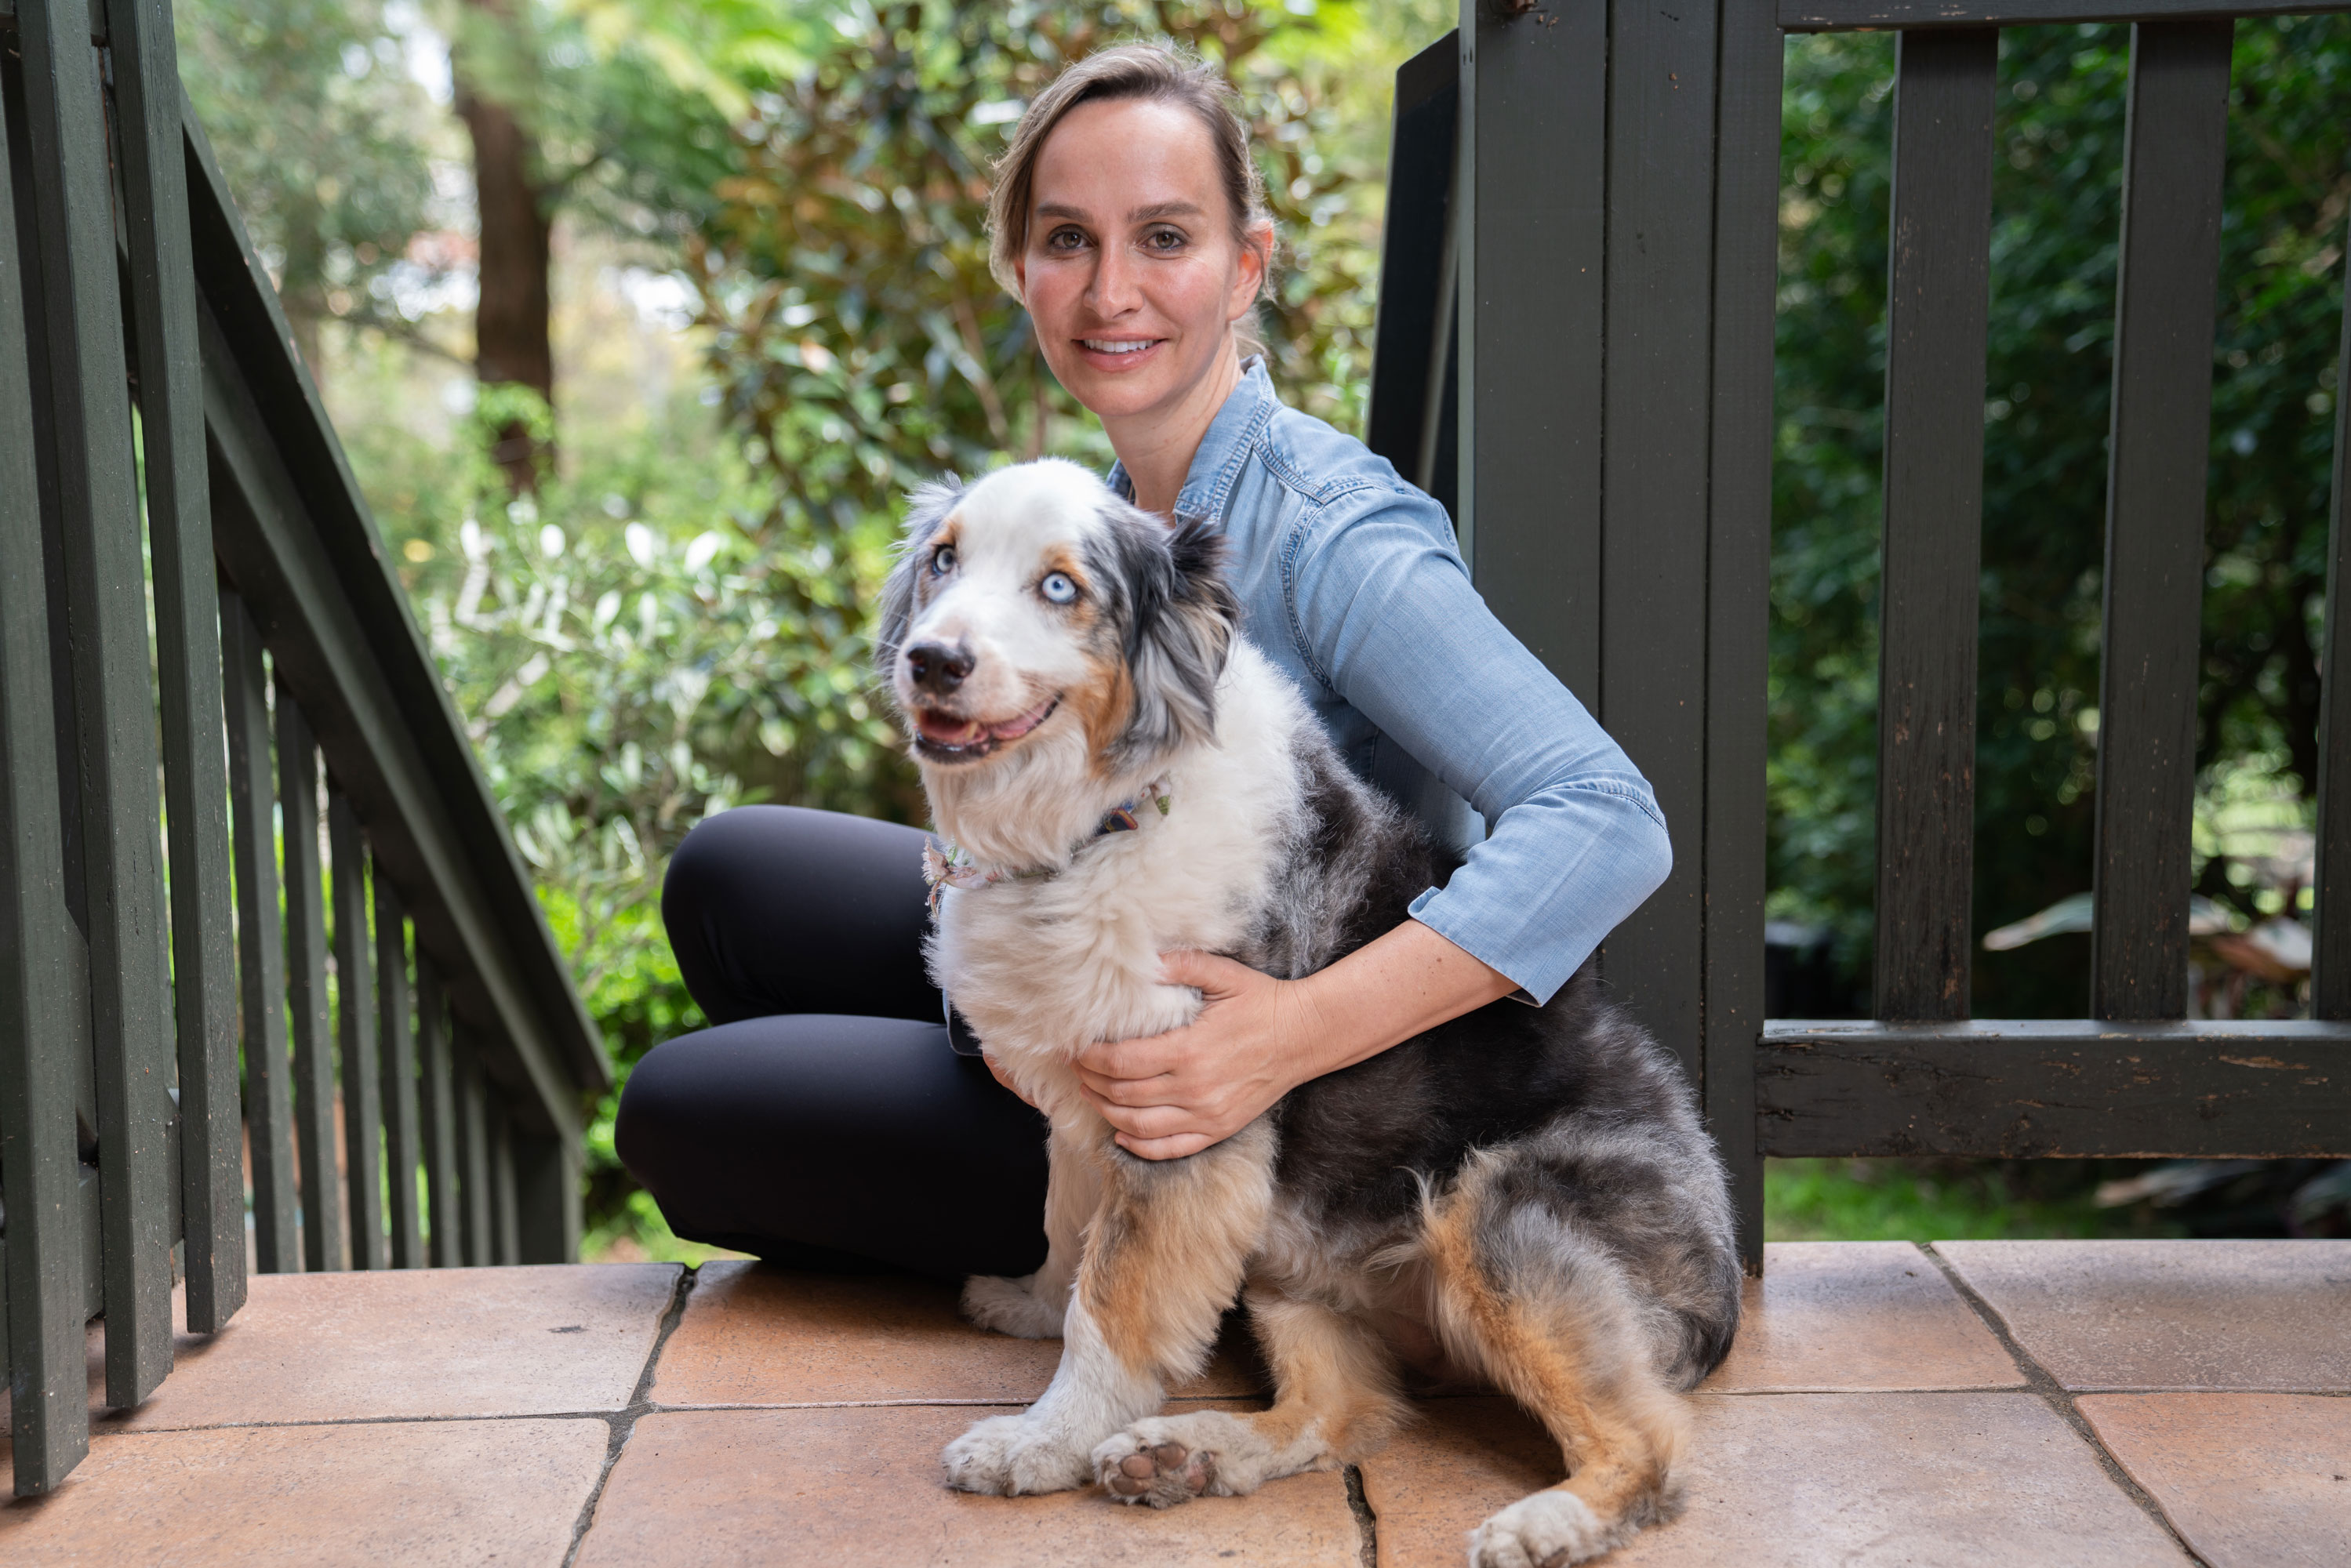 Jessica founder of Koala Eco with dog